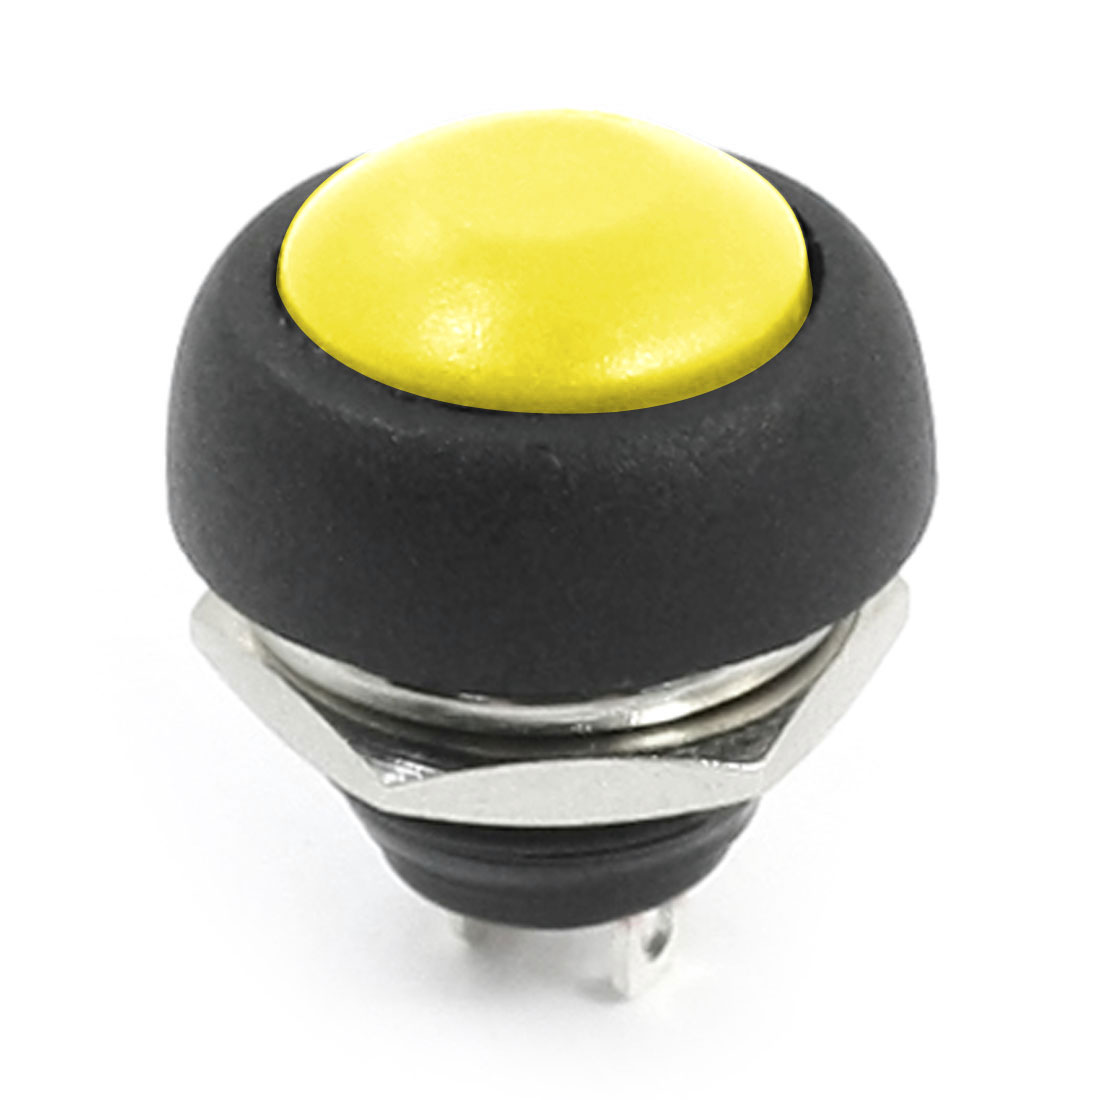 12mm Thread Panel Mounted 2Pins SPST Yellow Round Head Momentary Plastic Push Button Switch